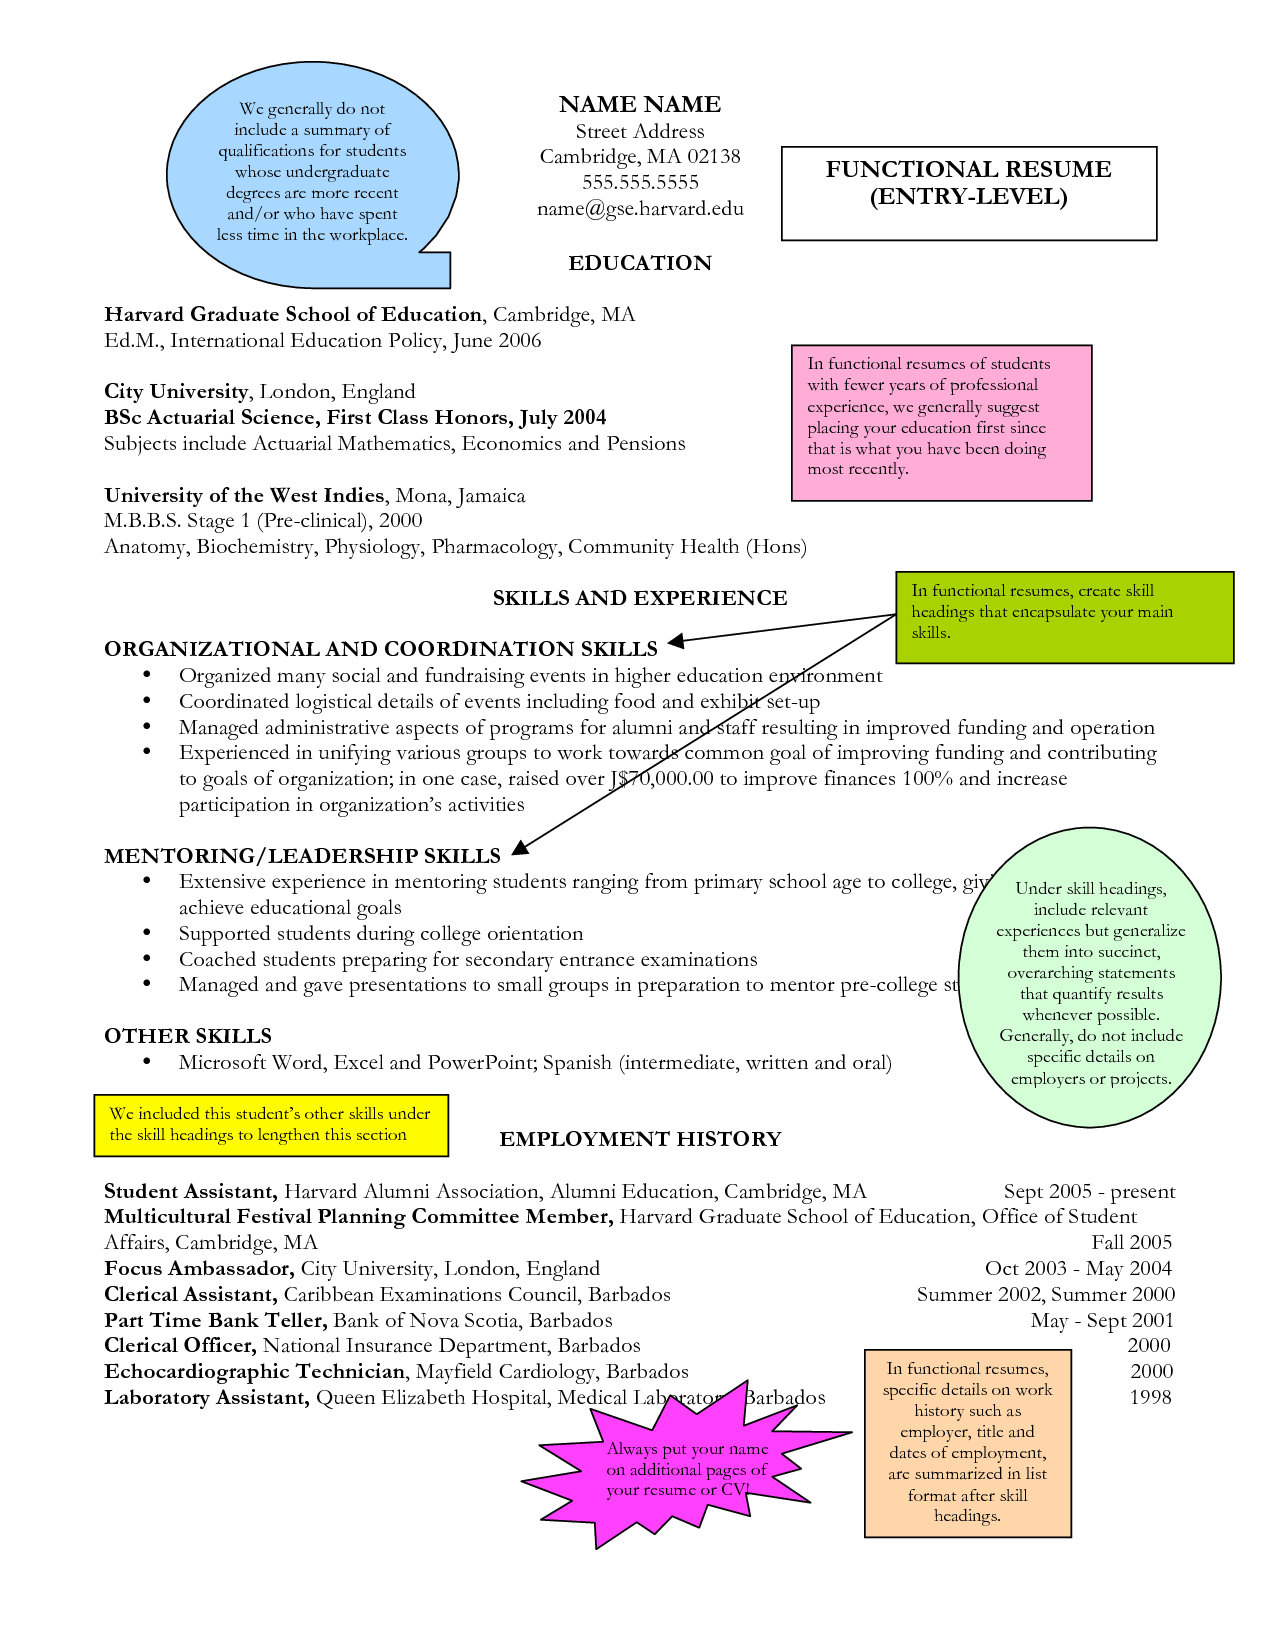 Combination Resume Template Entry Level Functional Resume  Google Search  Administrative